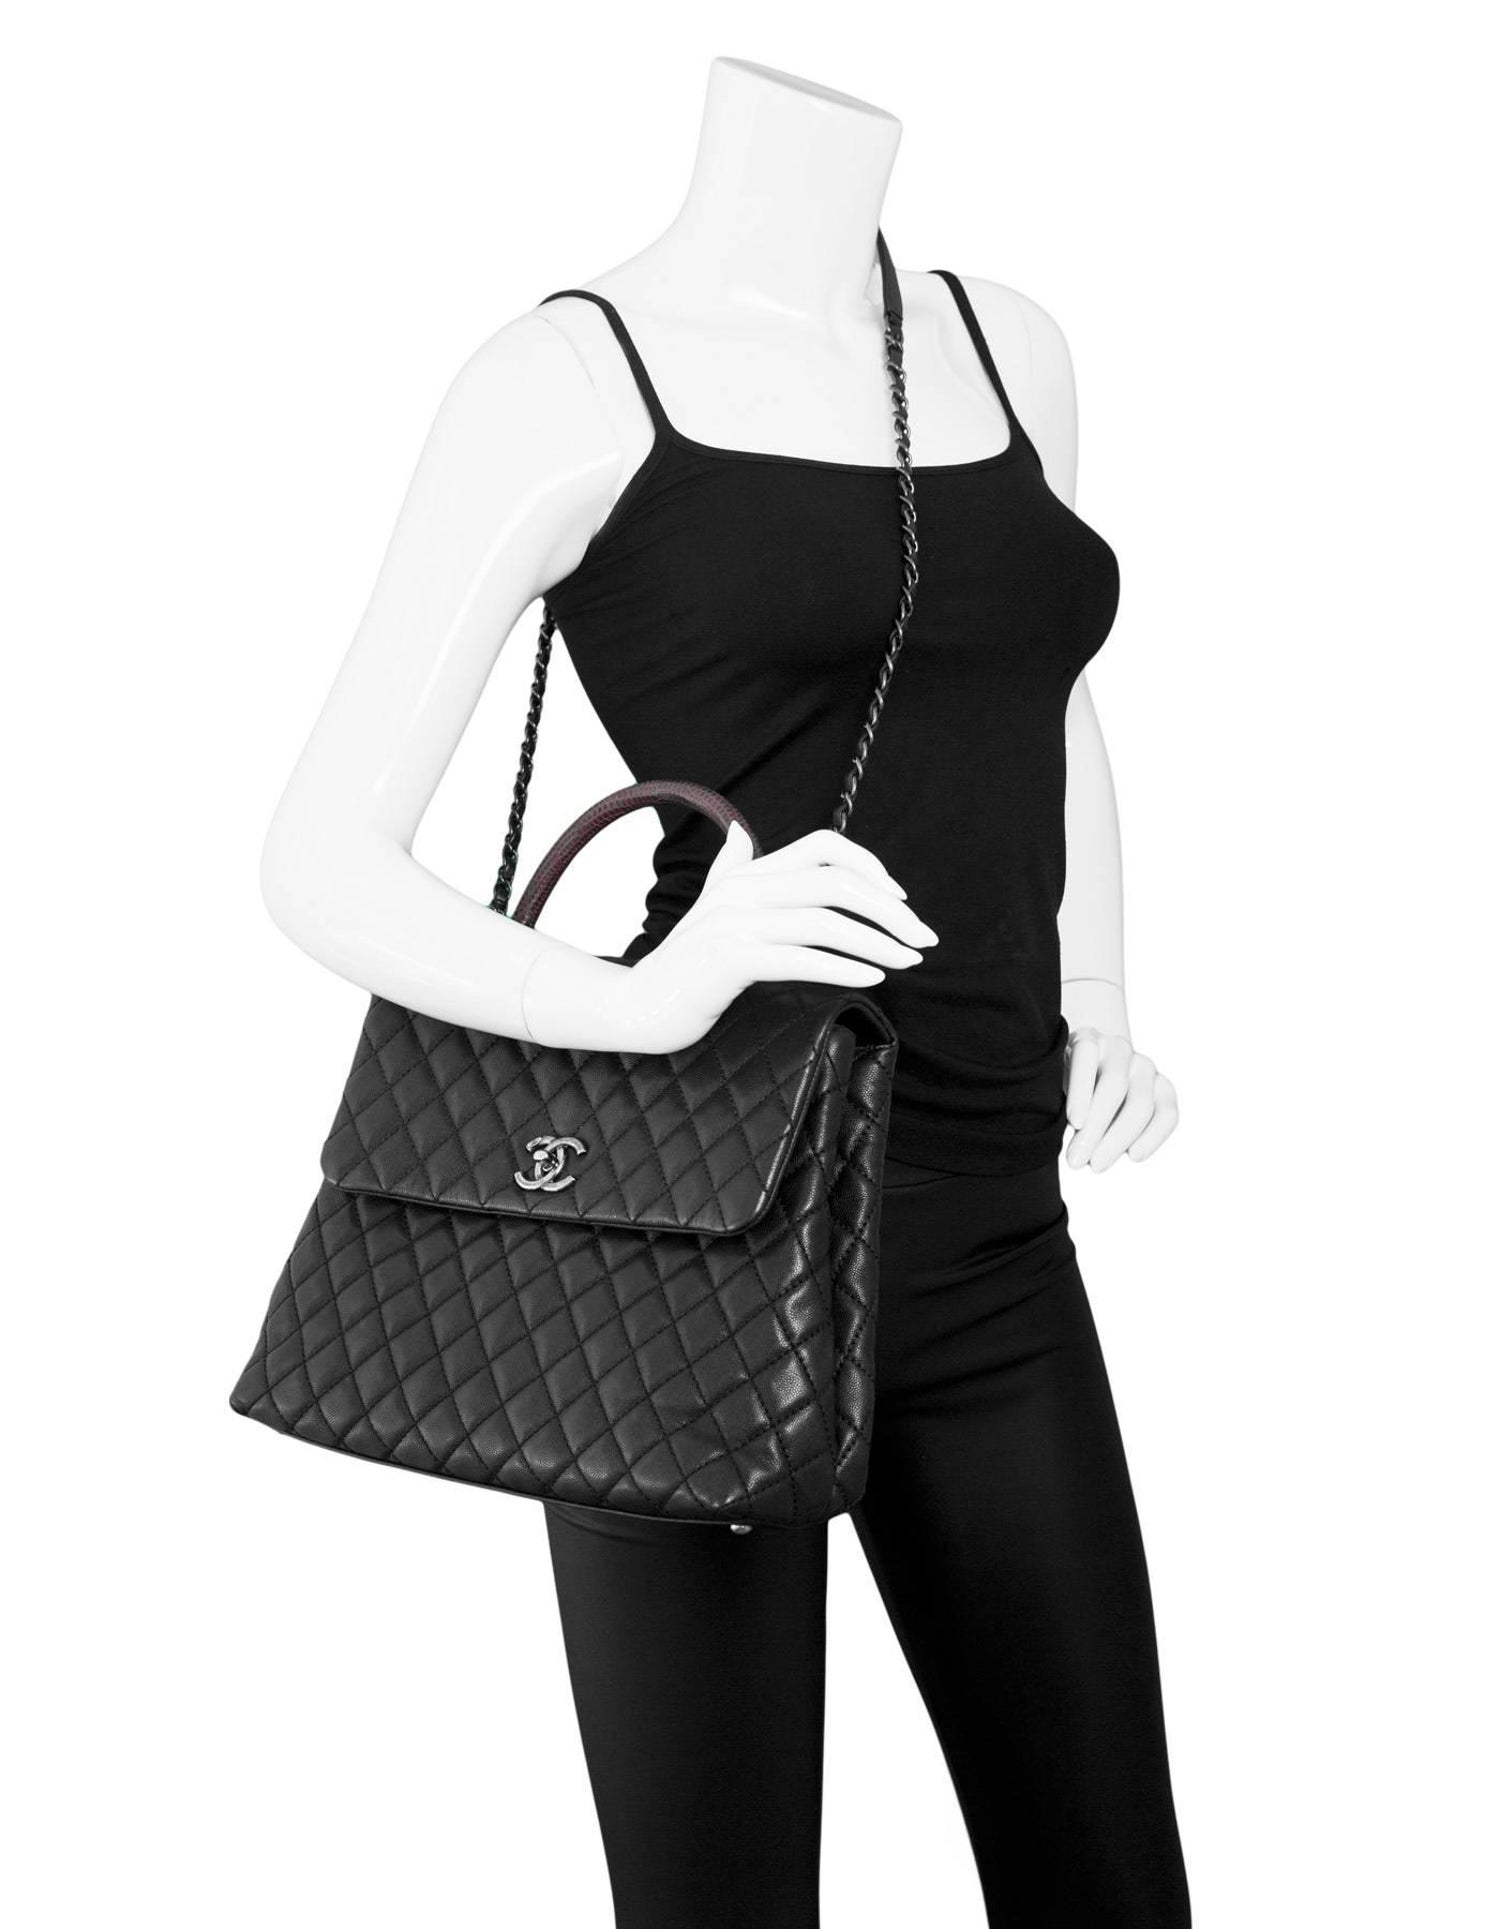 6dae72fcbbcf Chanel Black Caviar Leather Quilted Large Coco Lizard Handle Bag with DB  For Sale at 1stdibs